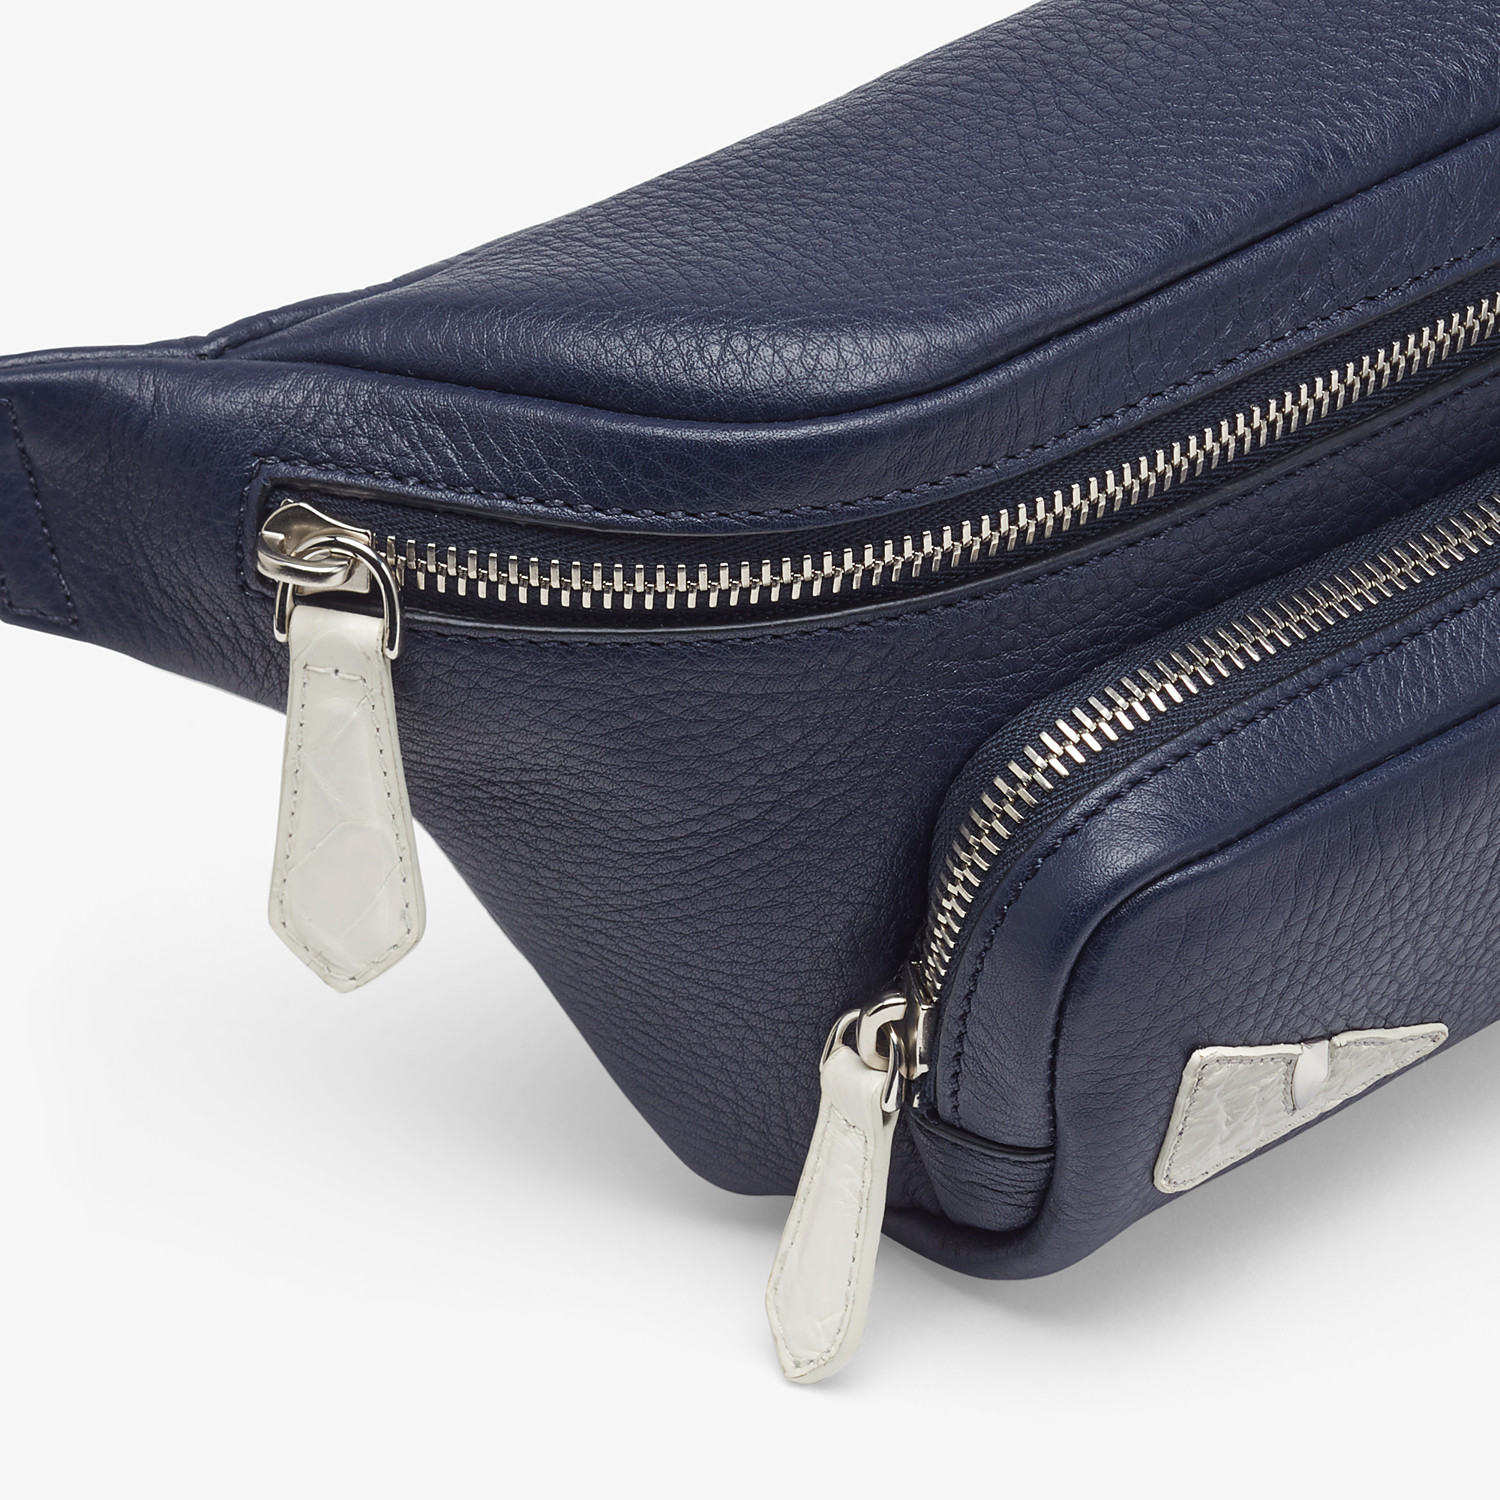 FENDI BELT BAG - Blue leather belt bag - view 5 detail